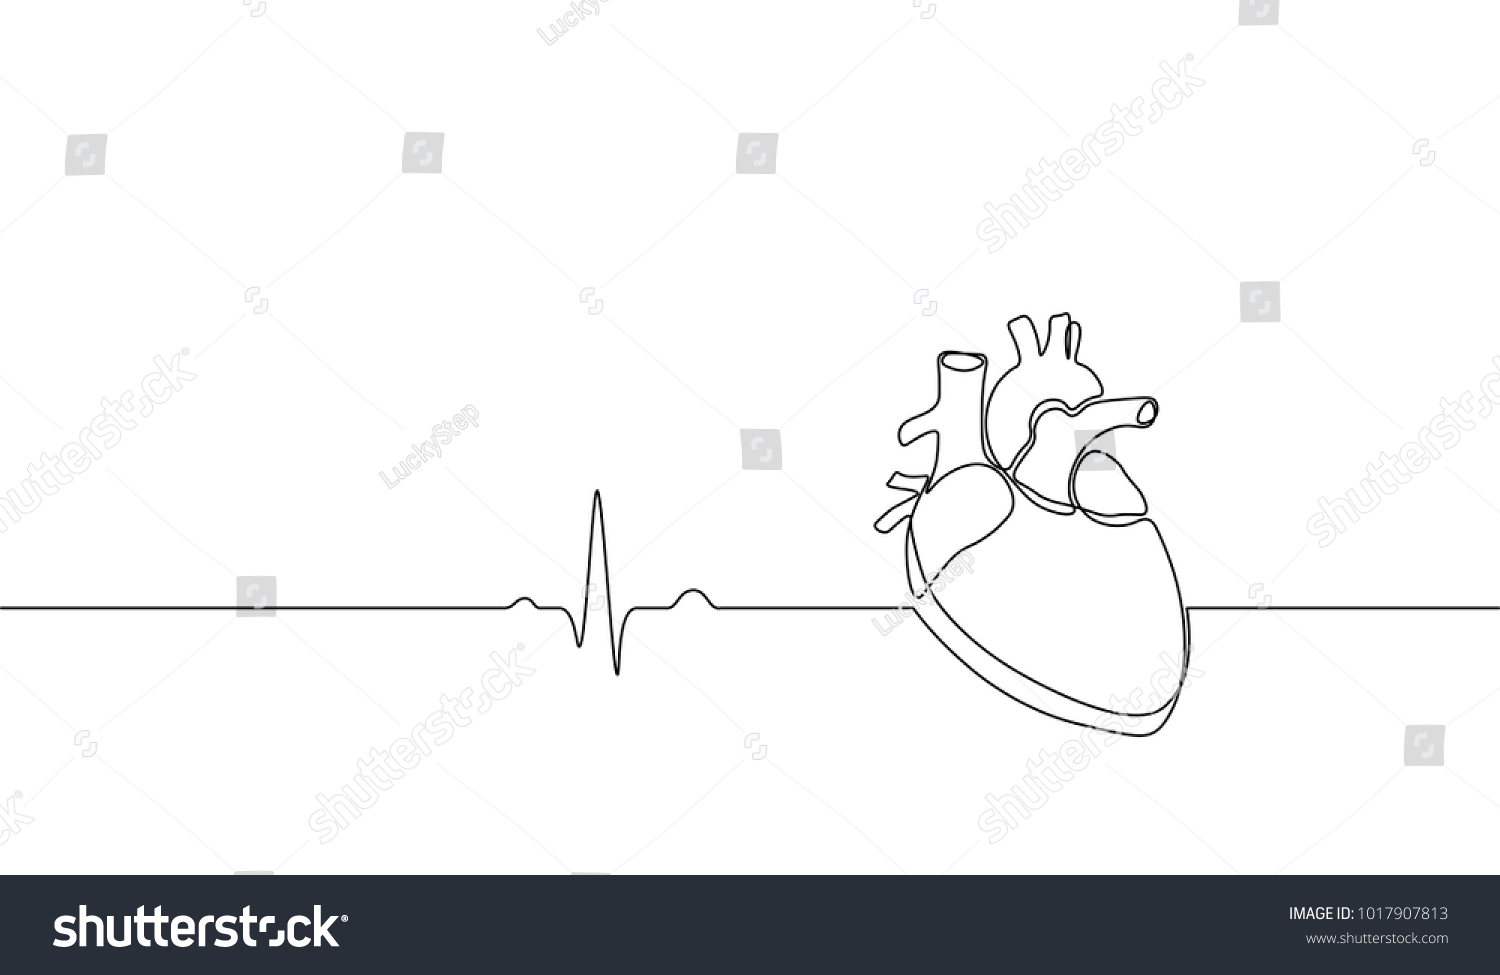 Line Art Heart Outline : Single continuous line art anatomical human stock vector hd